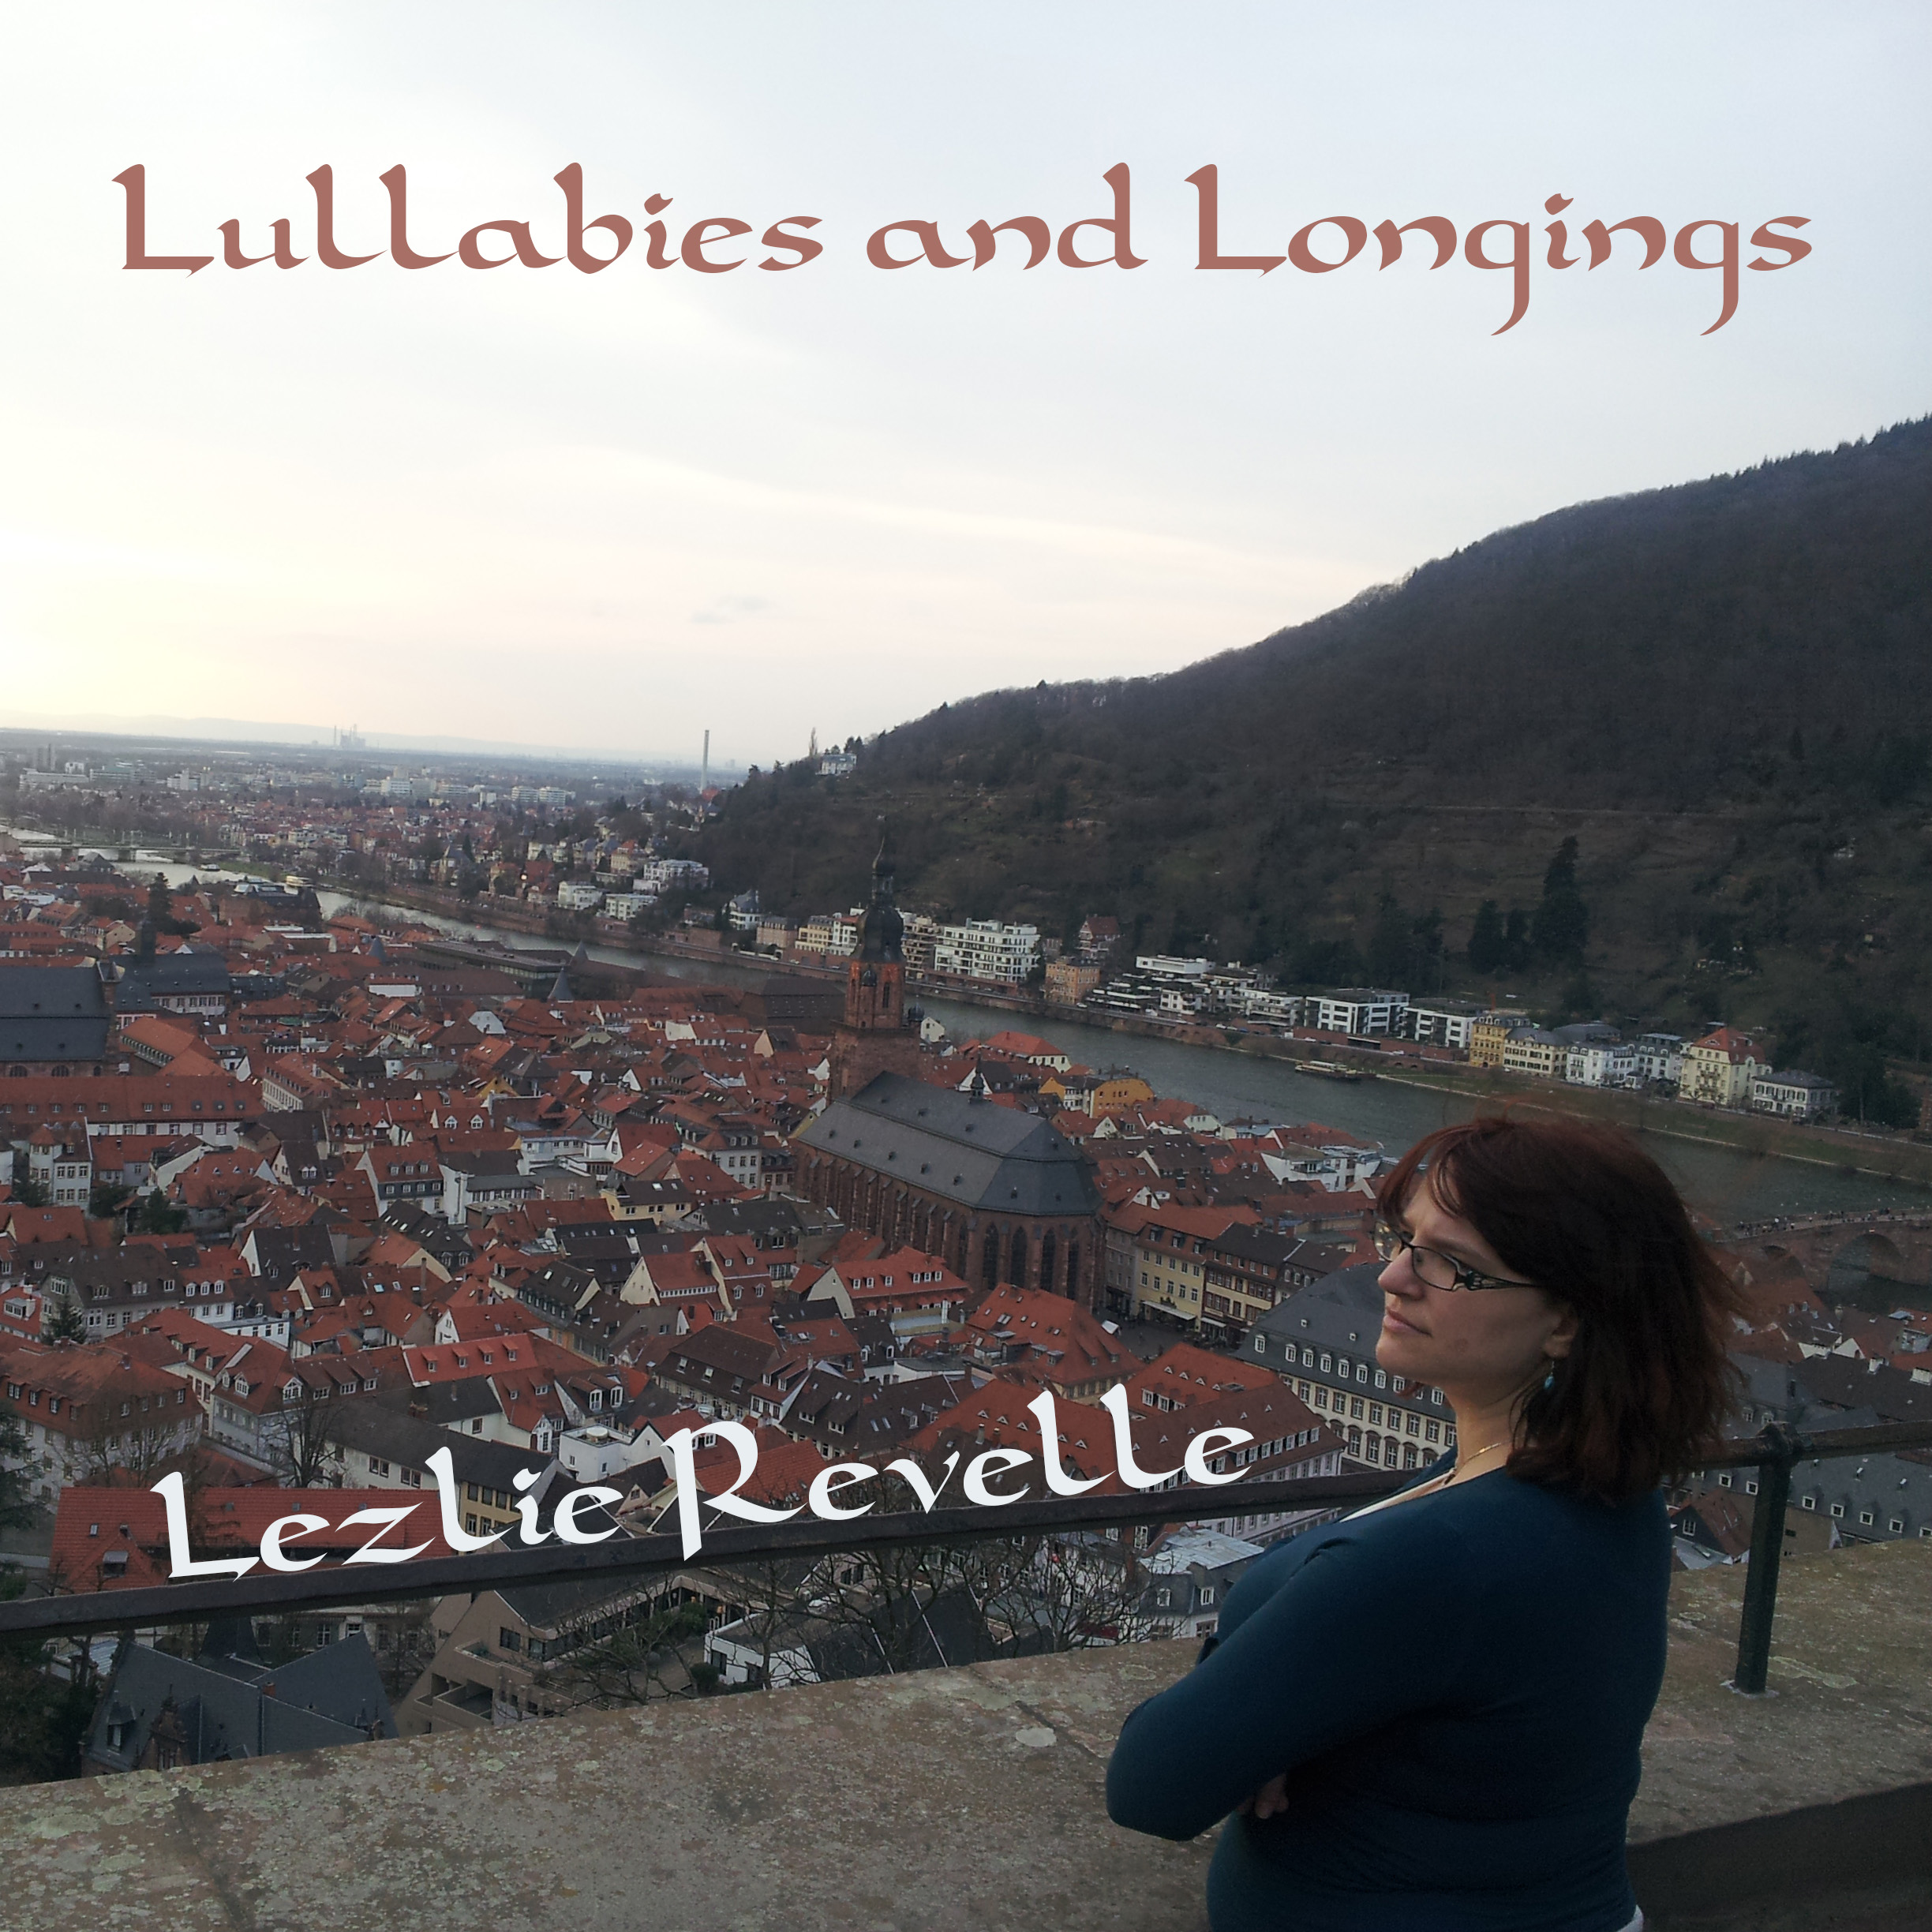 Lullabies and Longings cover